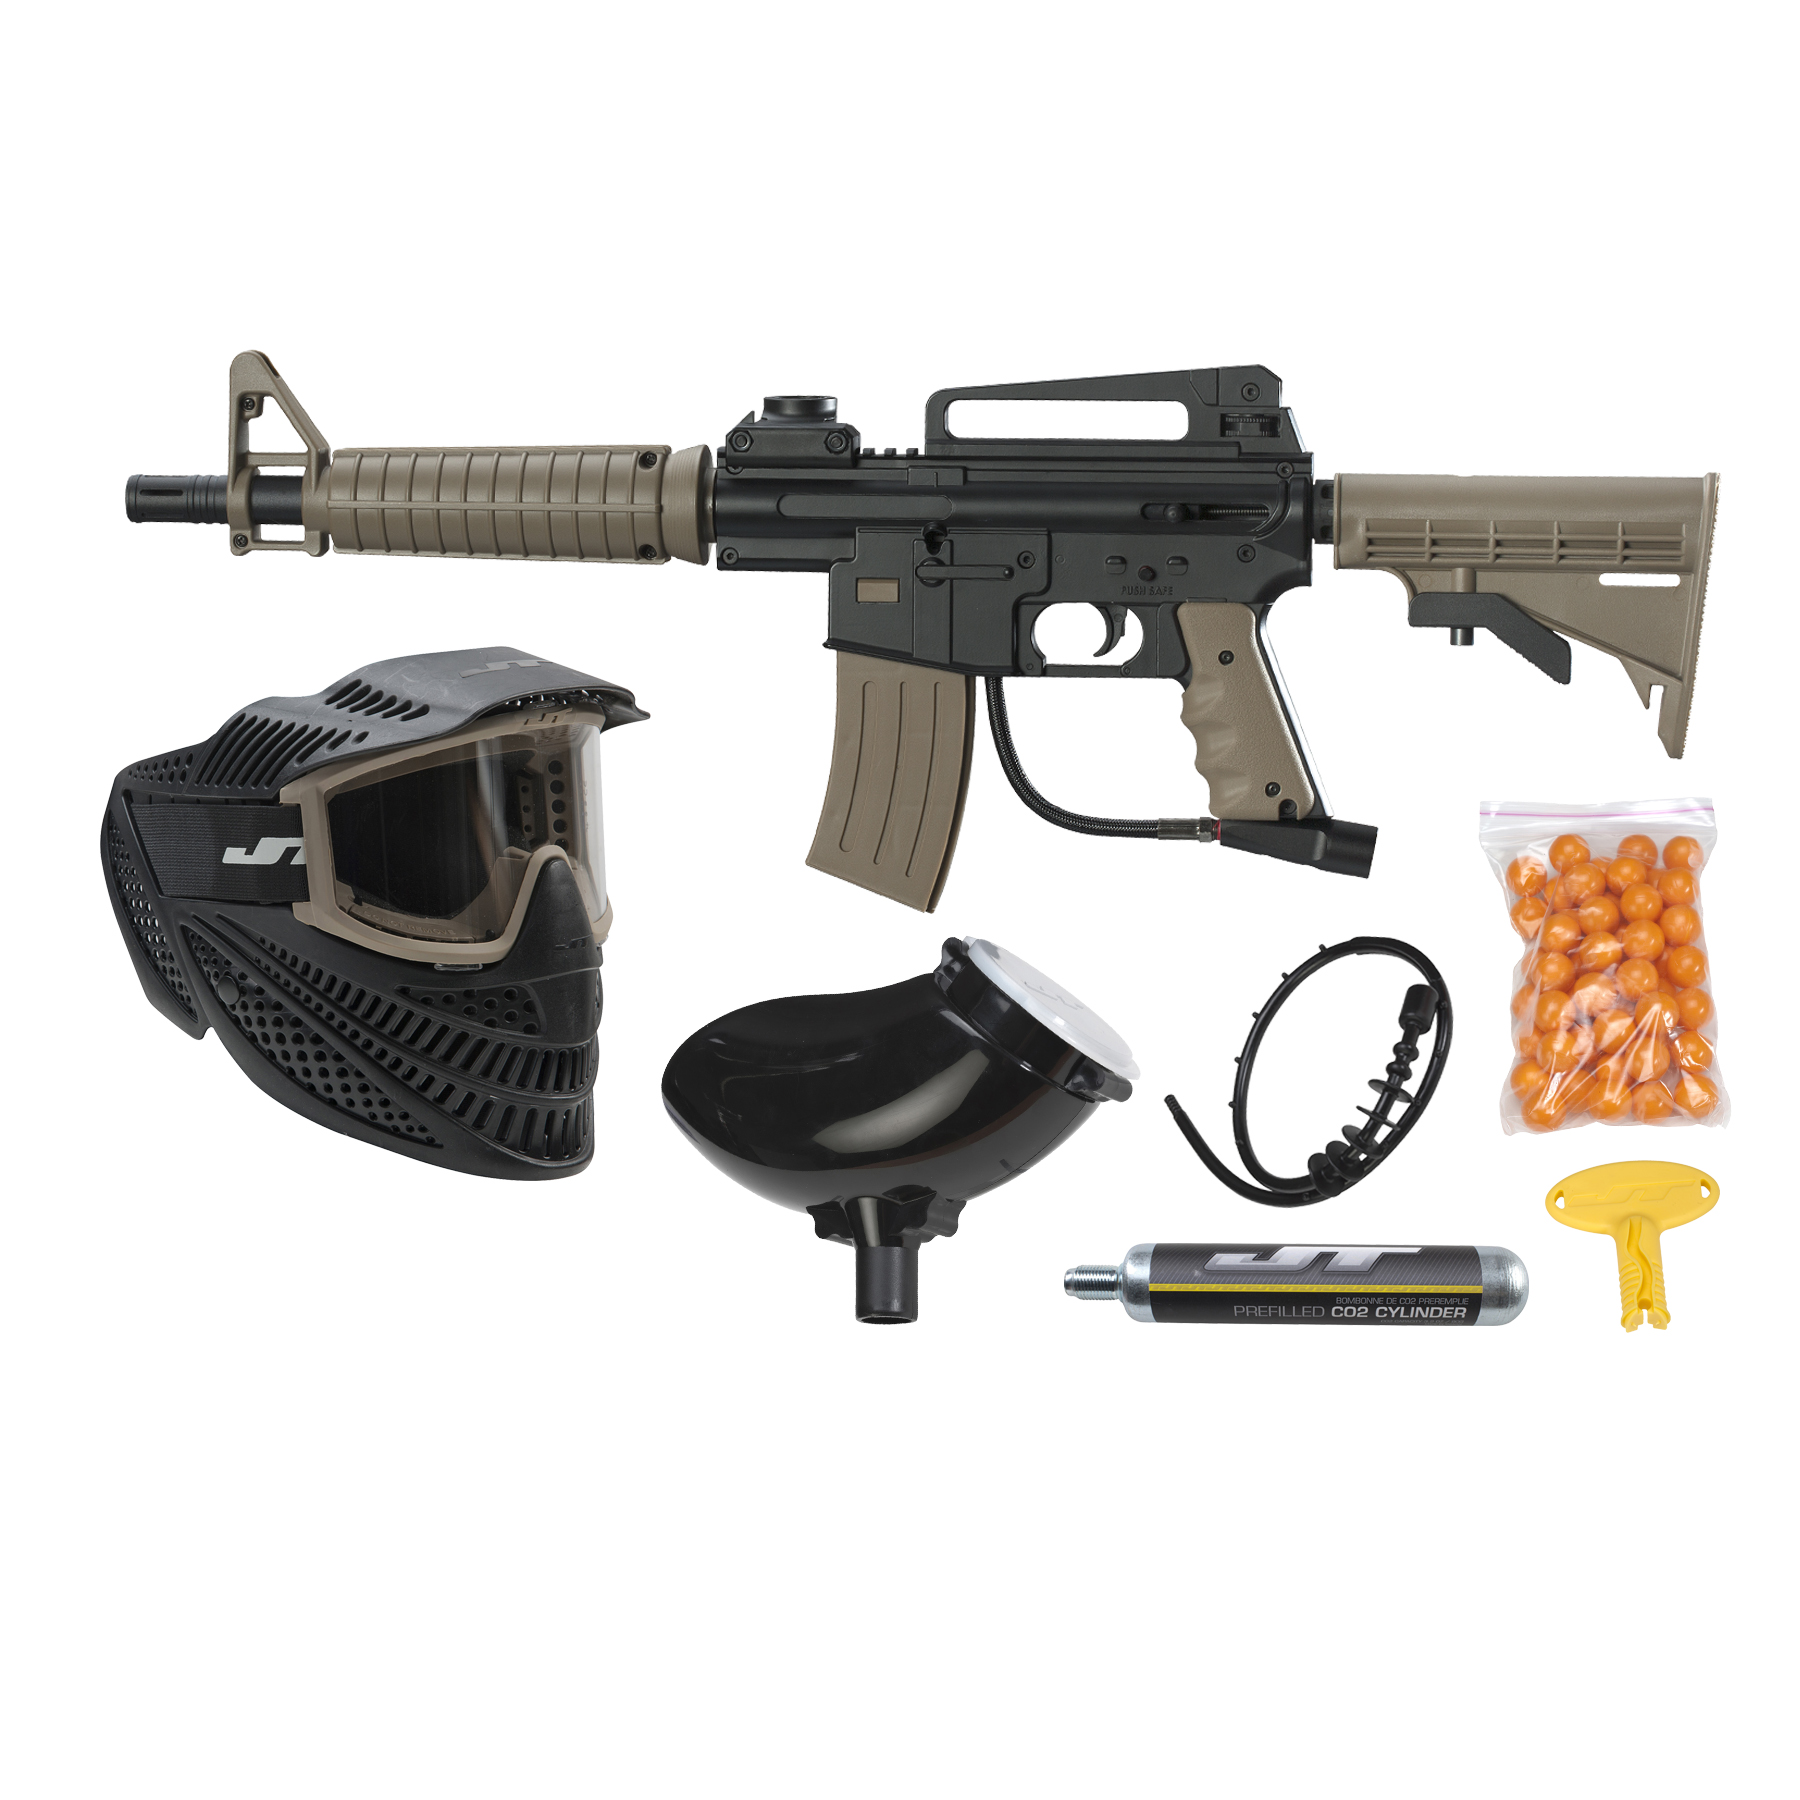 paintball gun - photo #17